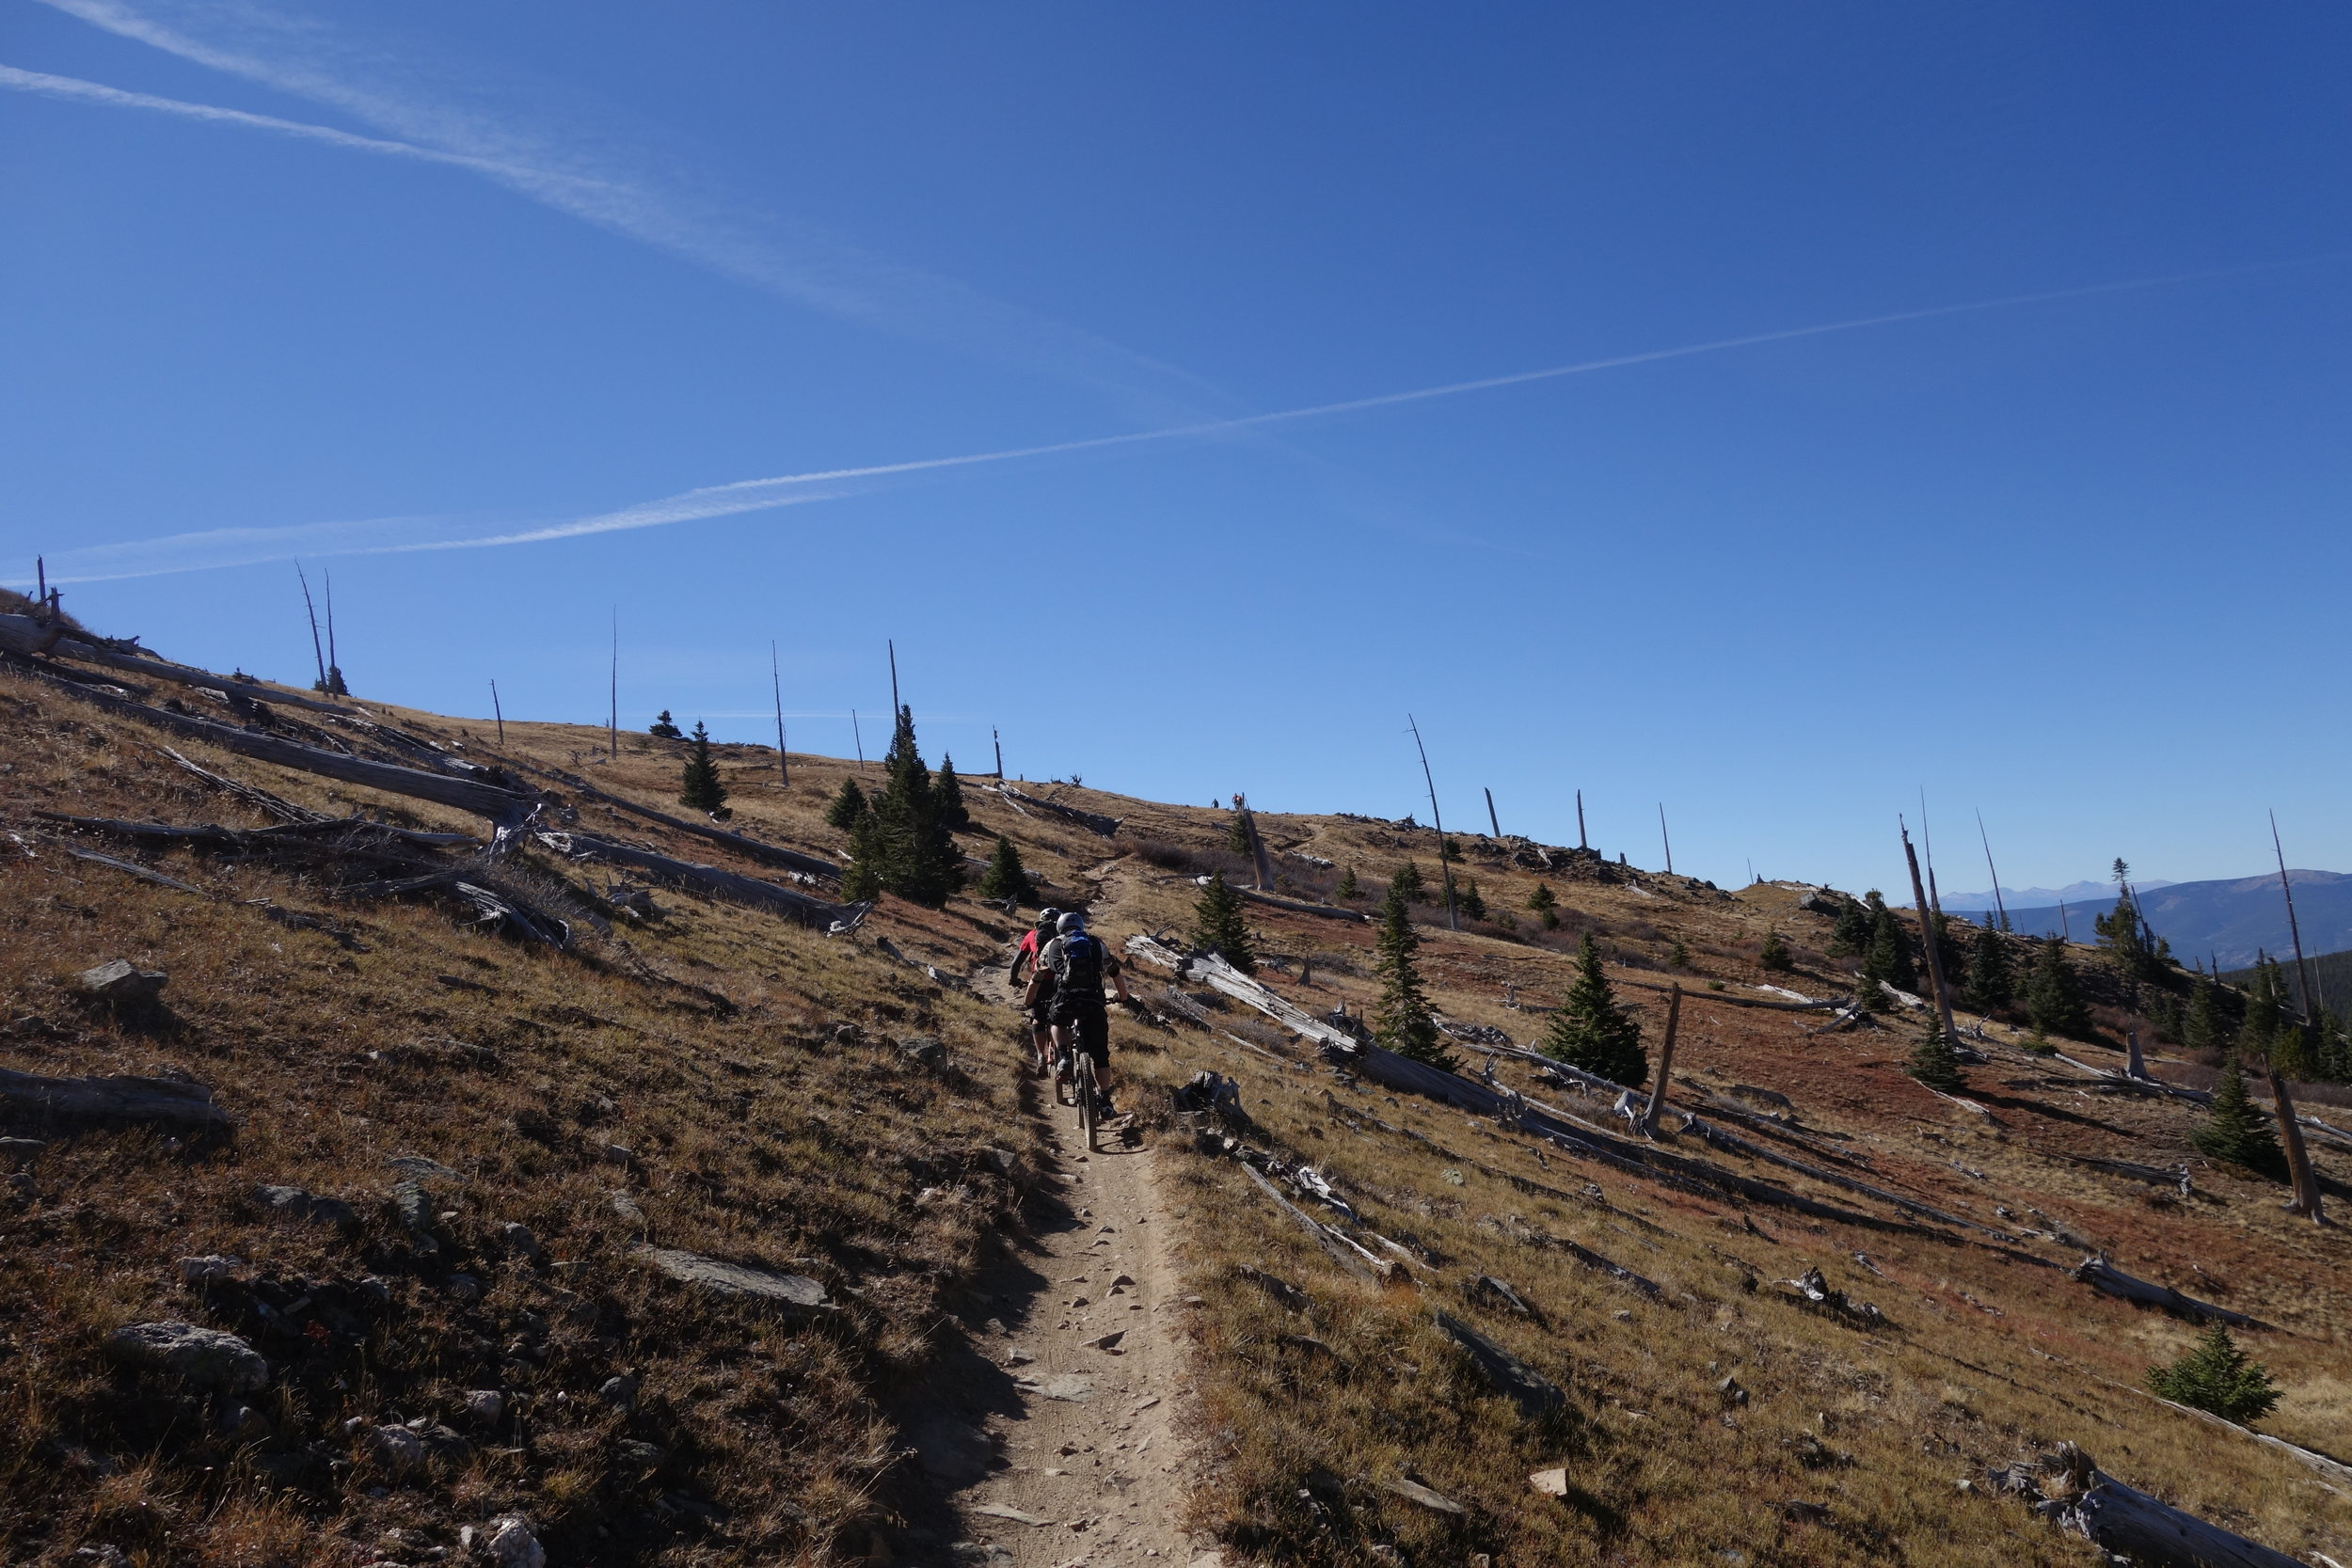 Endless singletrack and gentle climbs. I want to move to Monarch Crest